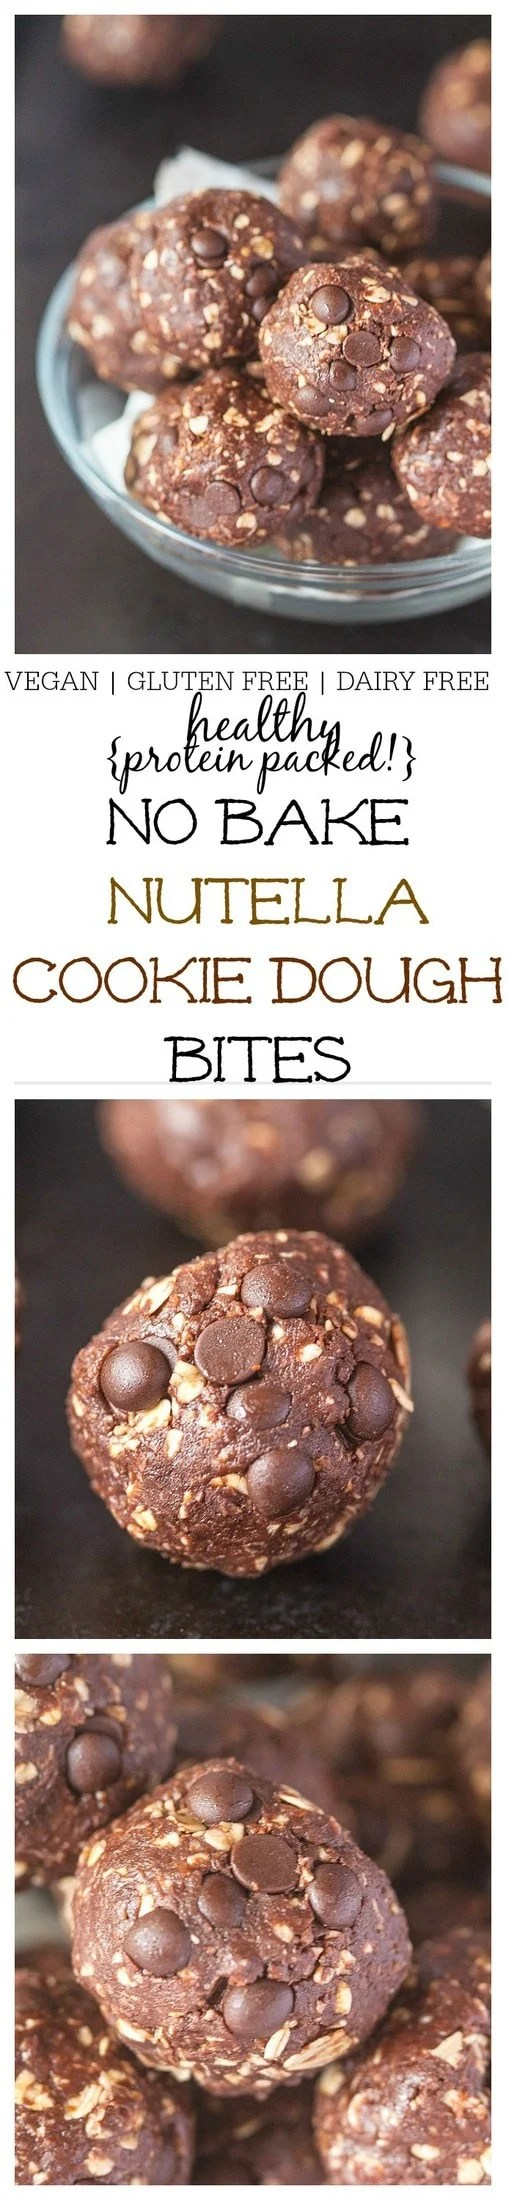 "Healthy {protein packed!} No Bake ""Nutella"" Cookie Dough Bites- Just 1 bowl and FIVE minutes is needed to whip up this NO BAKE ""nutella"" cookie dough bites which are high in protein, vegan, gluten free and dairy free! Perfect for breakfast or snacking! @thebigmansworld- thebigmansworld.com"